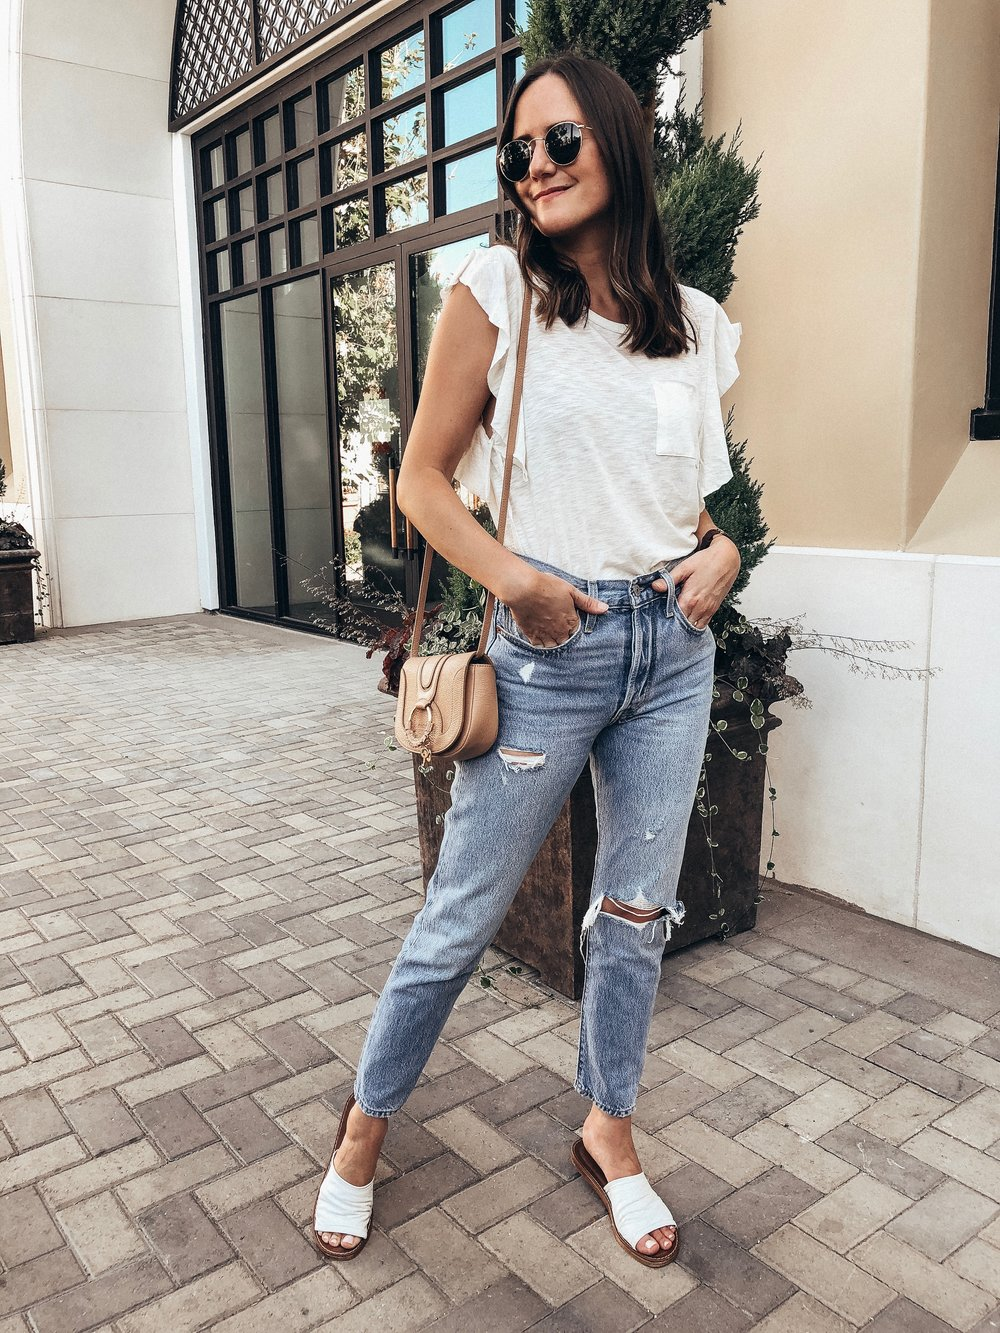 Outfit Details:  Free People Tee  |  Levi's Jeans  |  Bella Vita Slide Sandals  |  See by Chloe Bag  |  Ray-Ban Sunglasses  |  Madewell Circle Ring